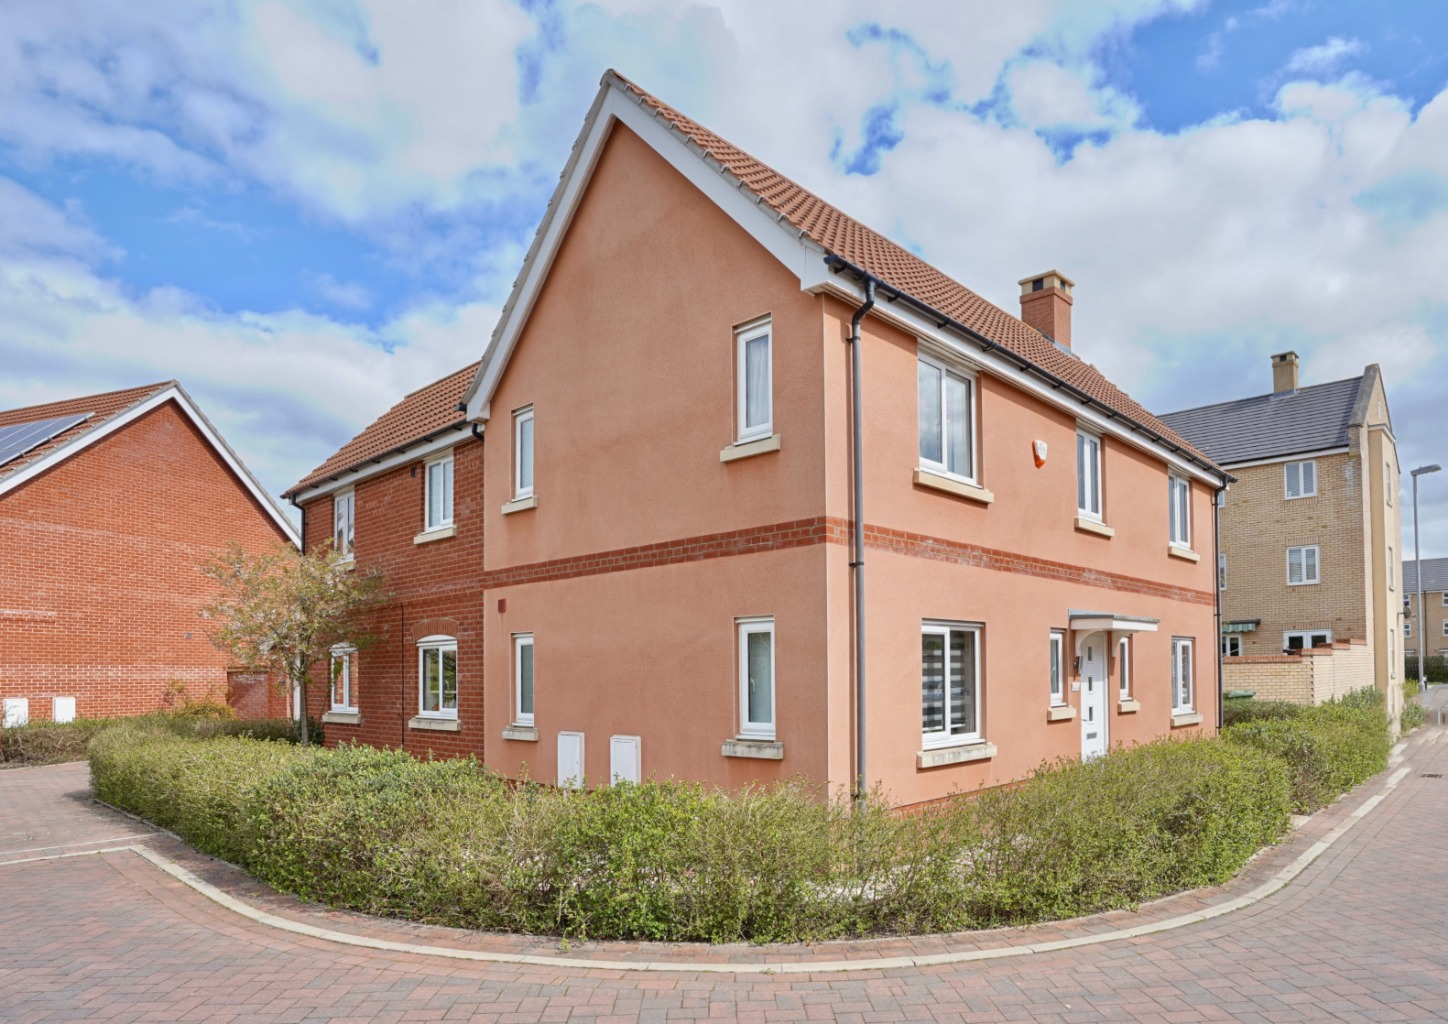 4 bed detached house for sale in Daffodil Close, St. Neots  - Property Image 14